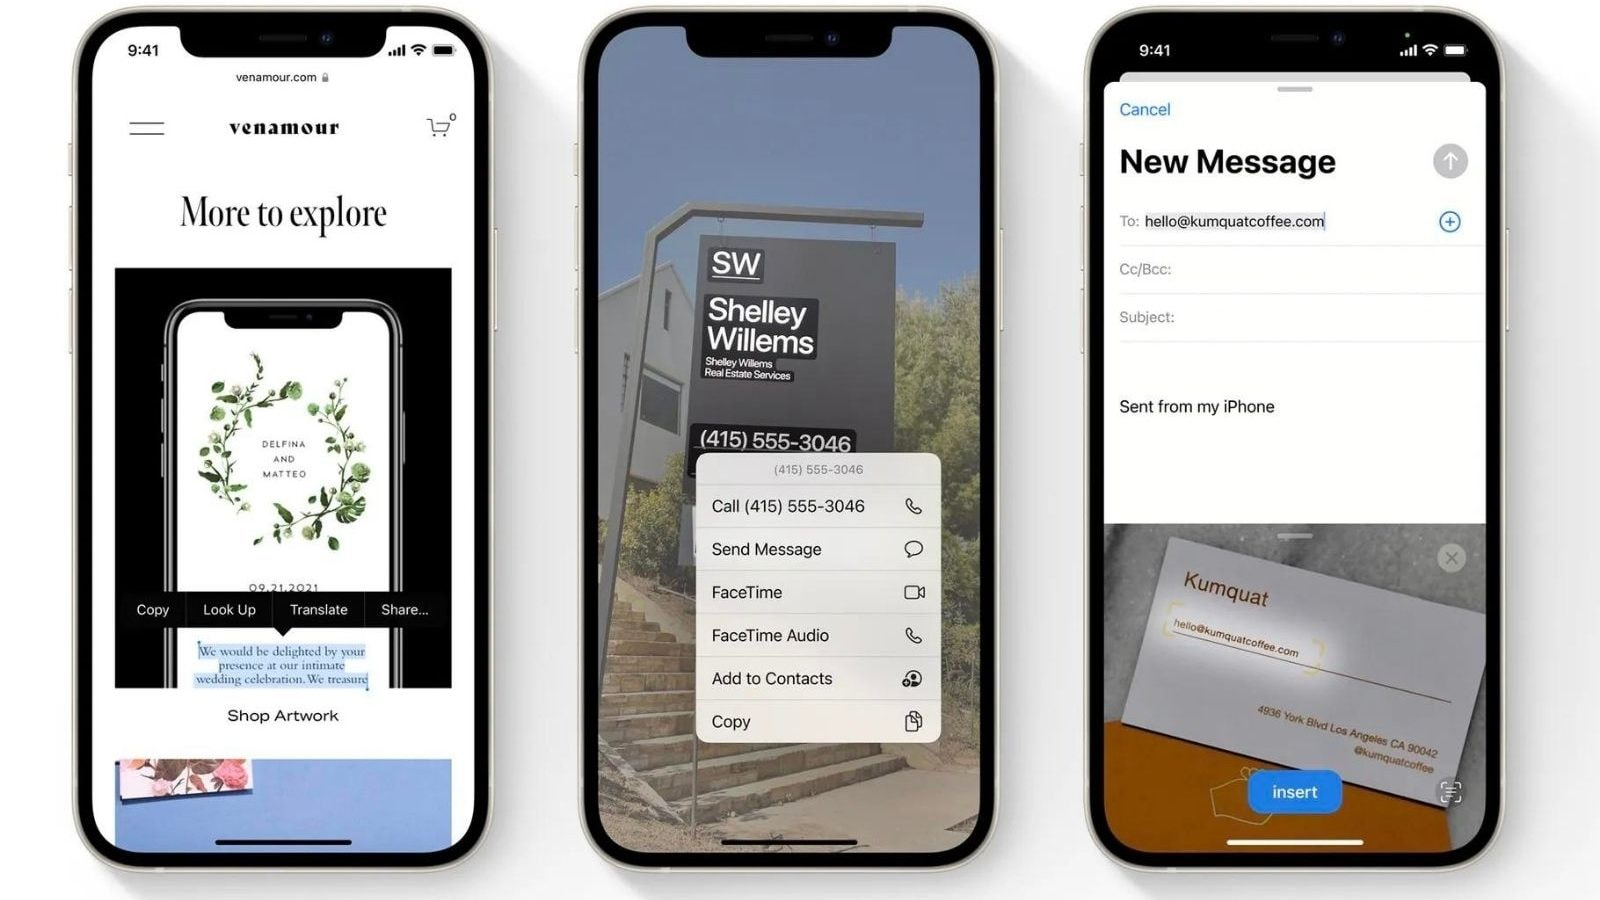 This Is How LiveText On iOS 15 For iPhone Will Let You Copy Text From Any Image